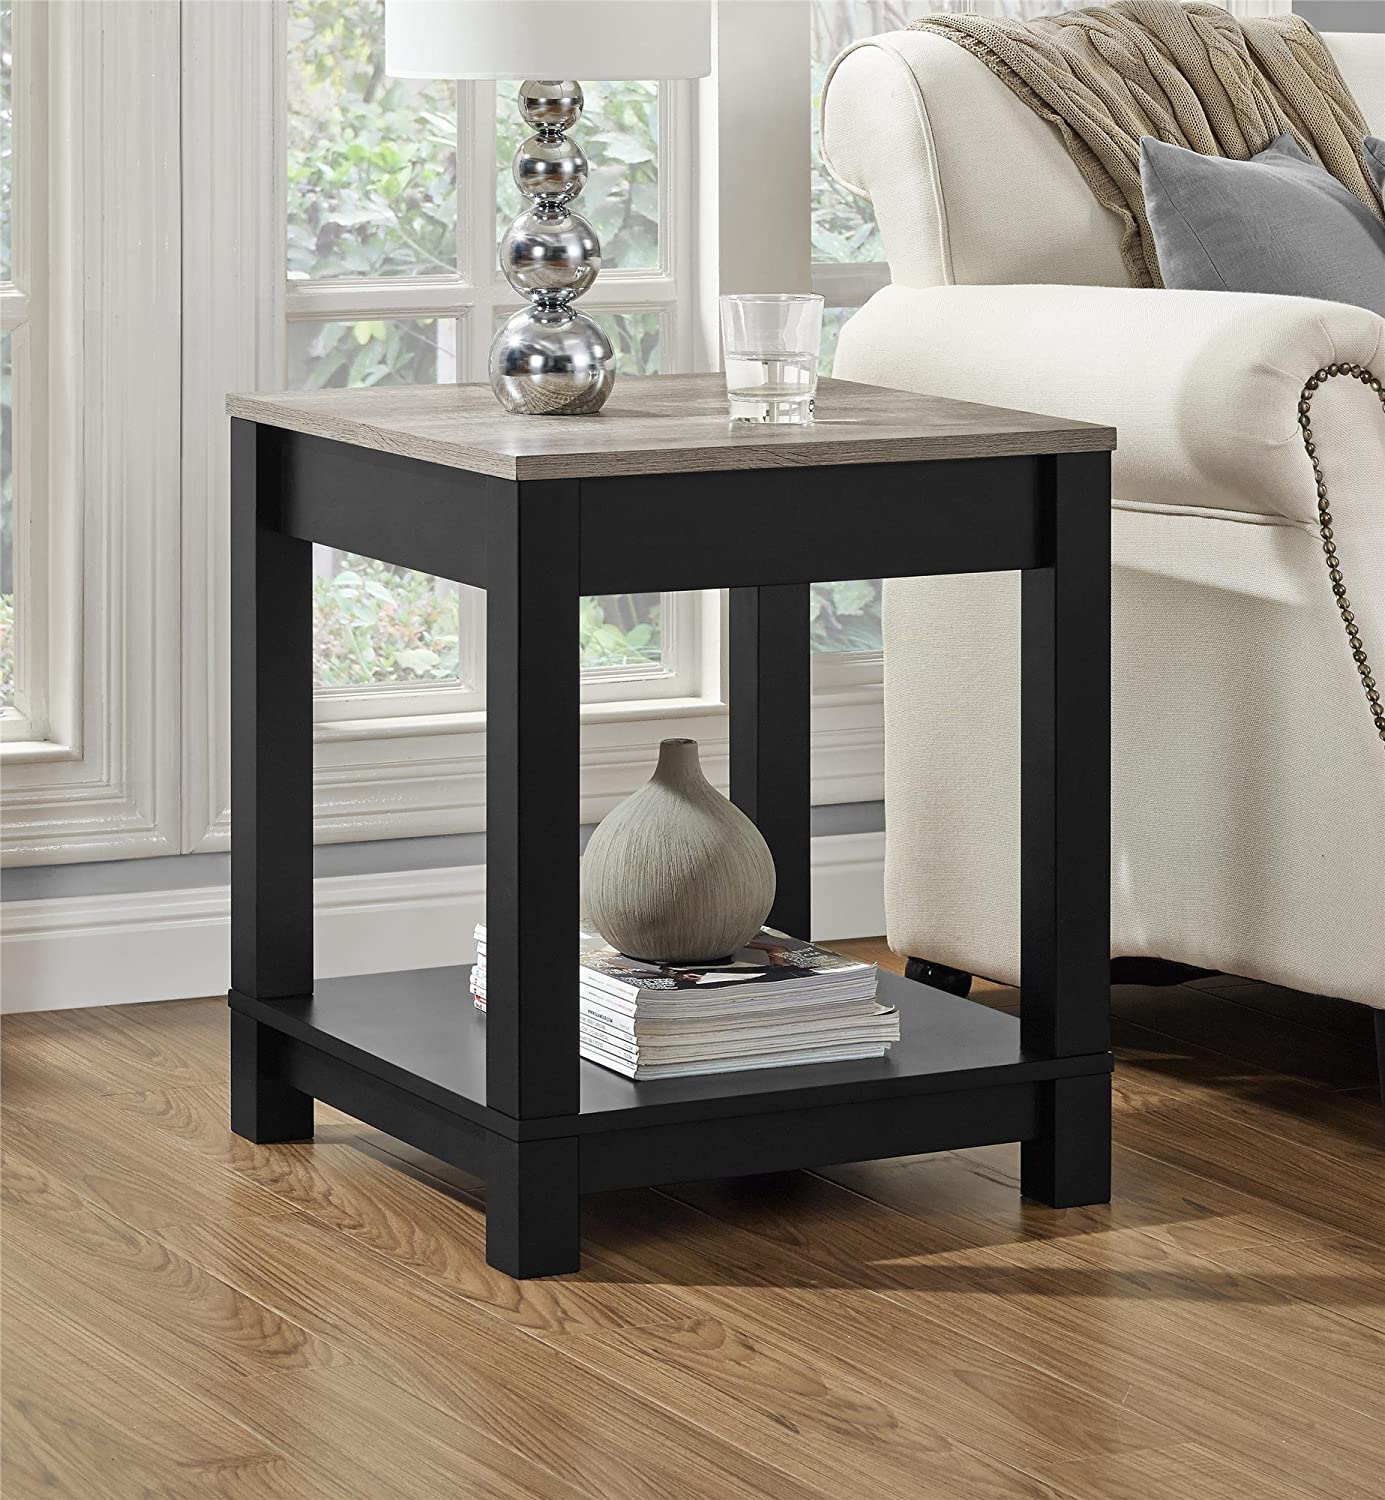 Amazon Ameriwood Home Carver End Table Black Kitchen & Dining